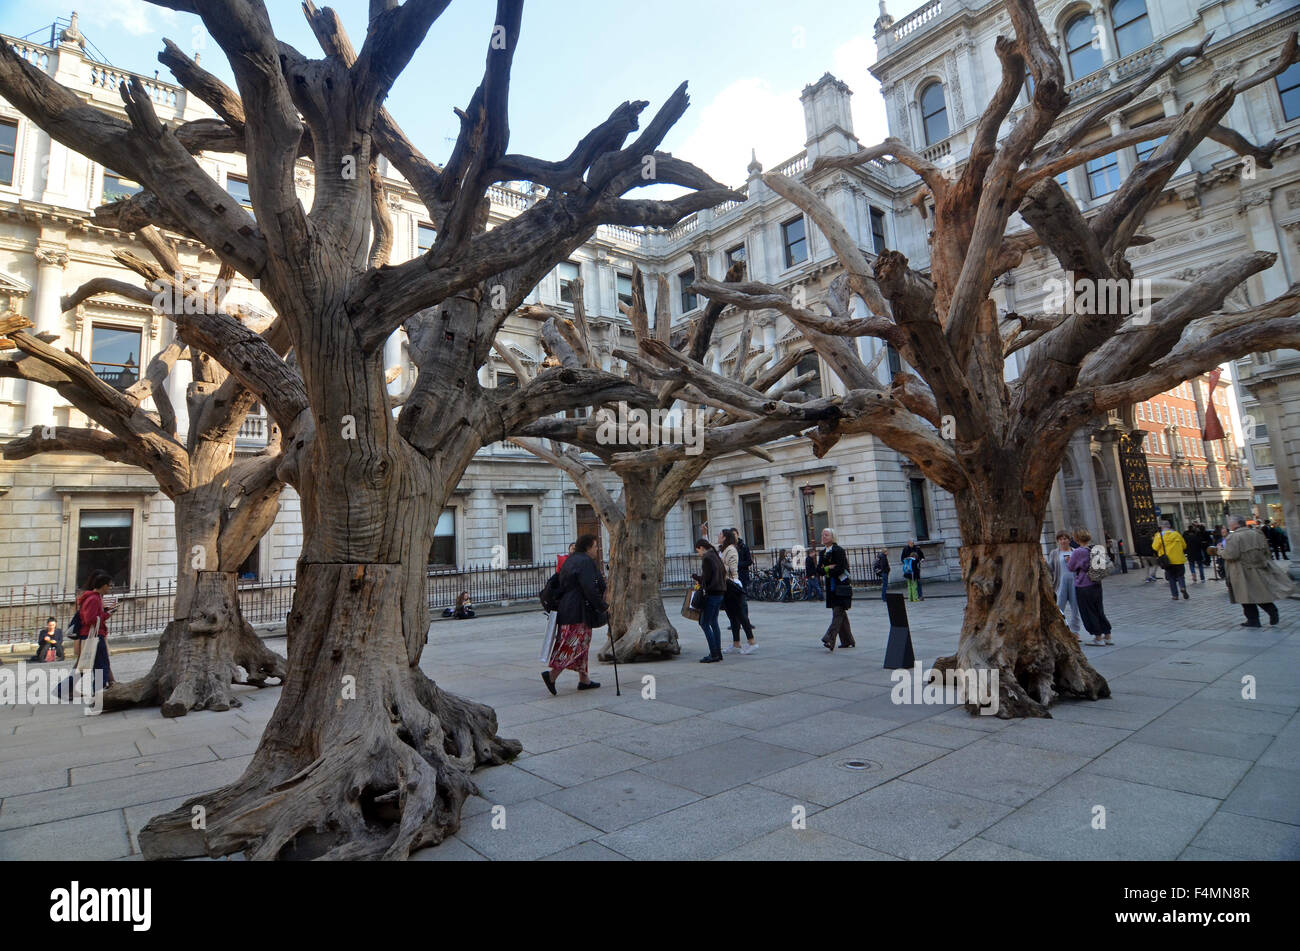 London uk october ai weiwei tree sculptures in